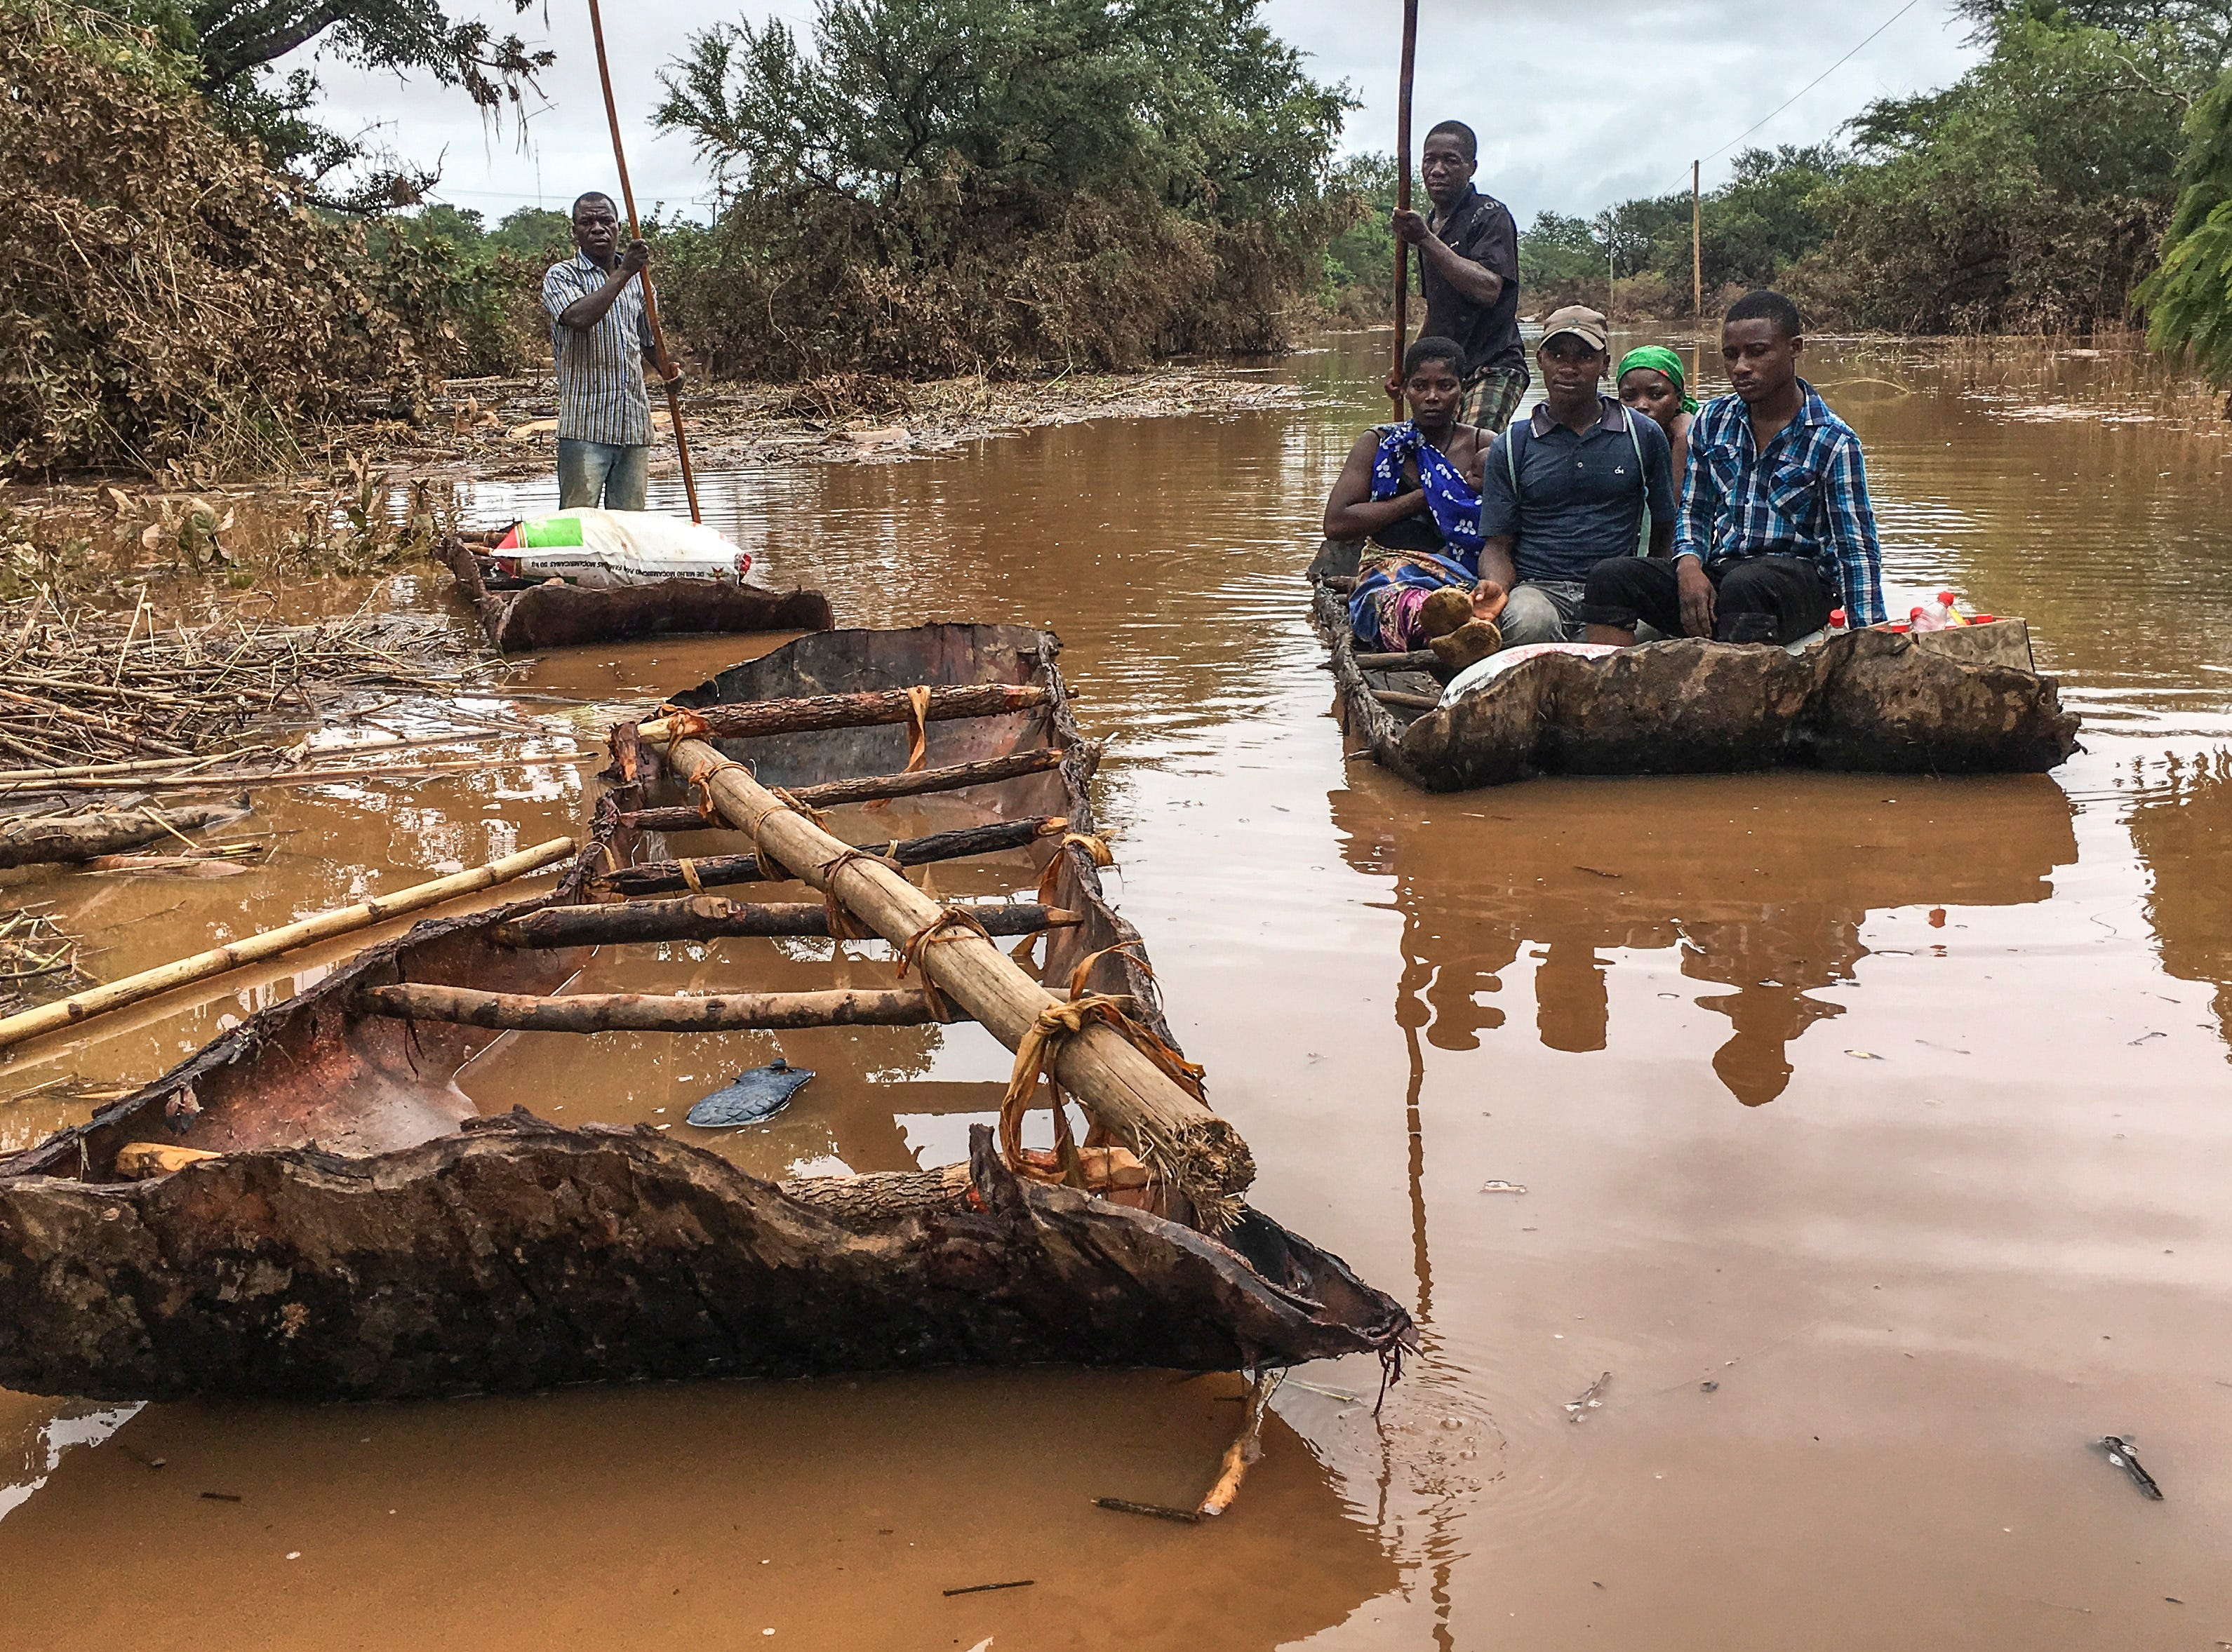 Civilians use makeshift boats to navigate flooded areas after Cyclone Idai tore through central Mozambique.